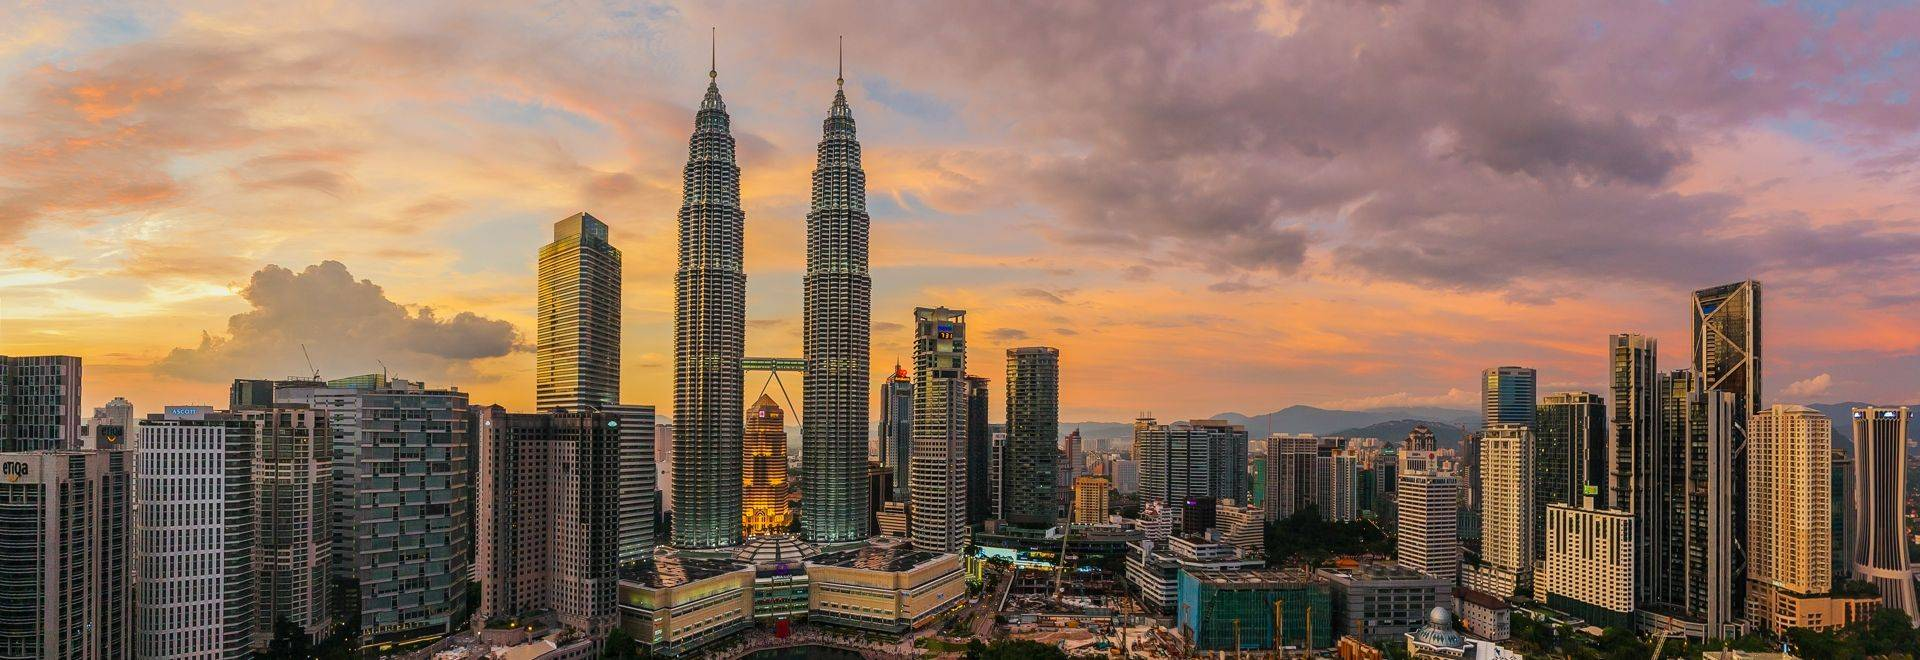 View of panorama of the center of Kuala Lumpur city with colorful clouds from the sunset in 2015.